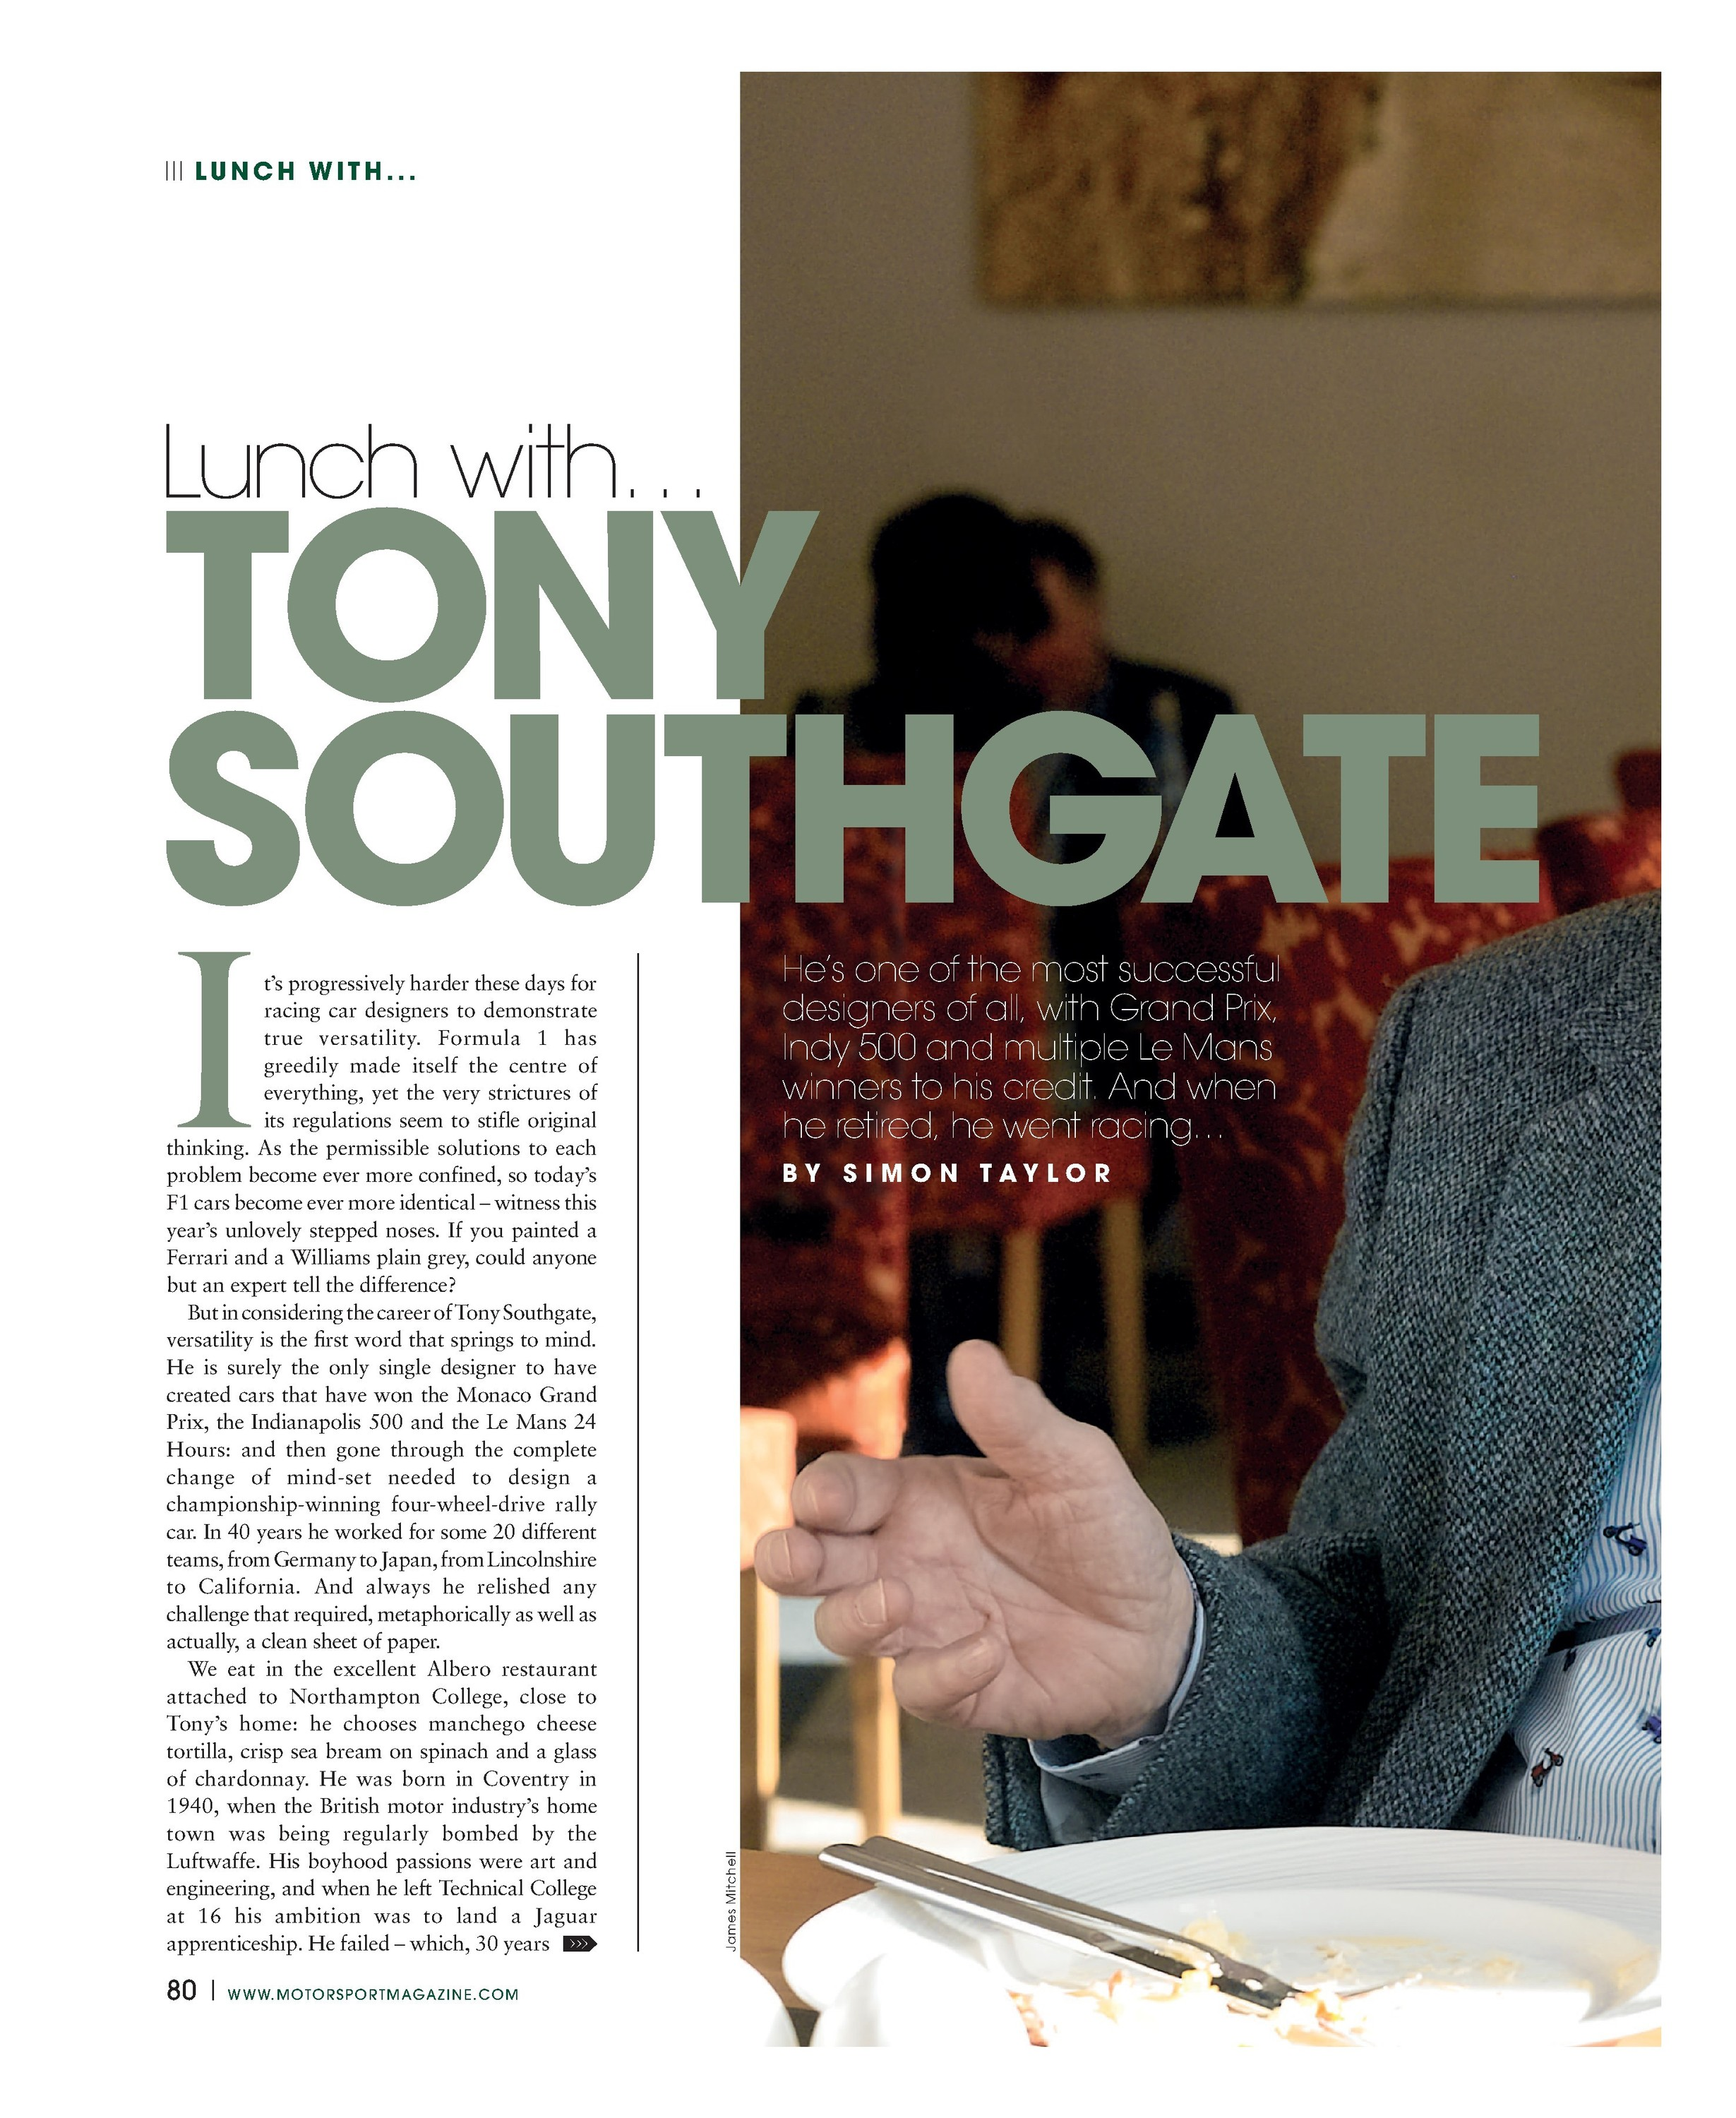 lunch with tony southgate image